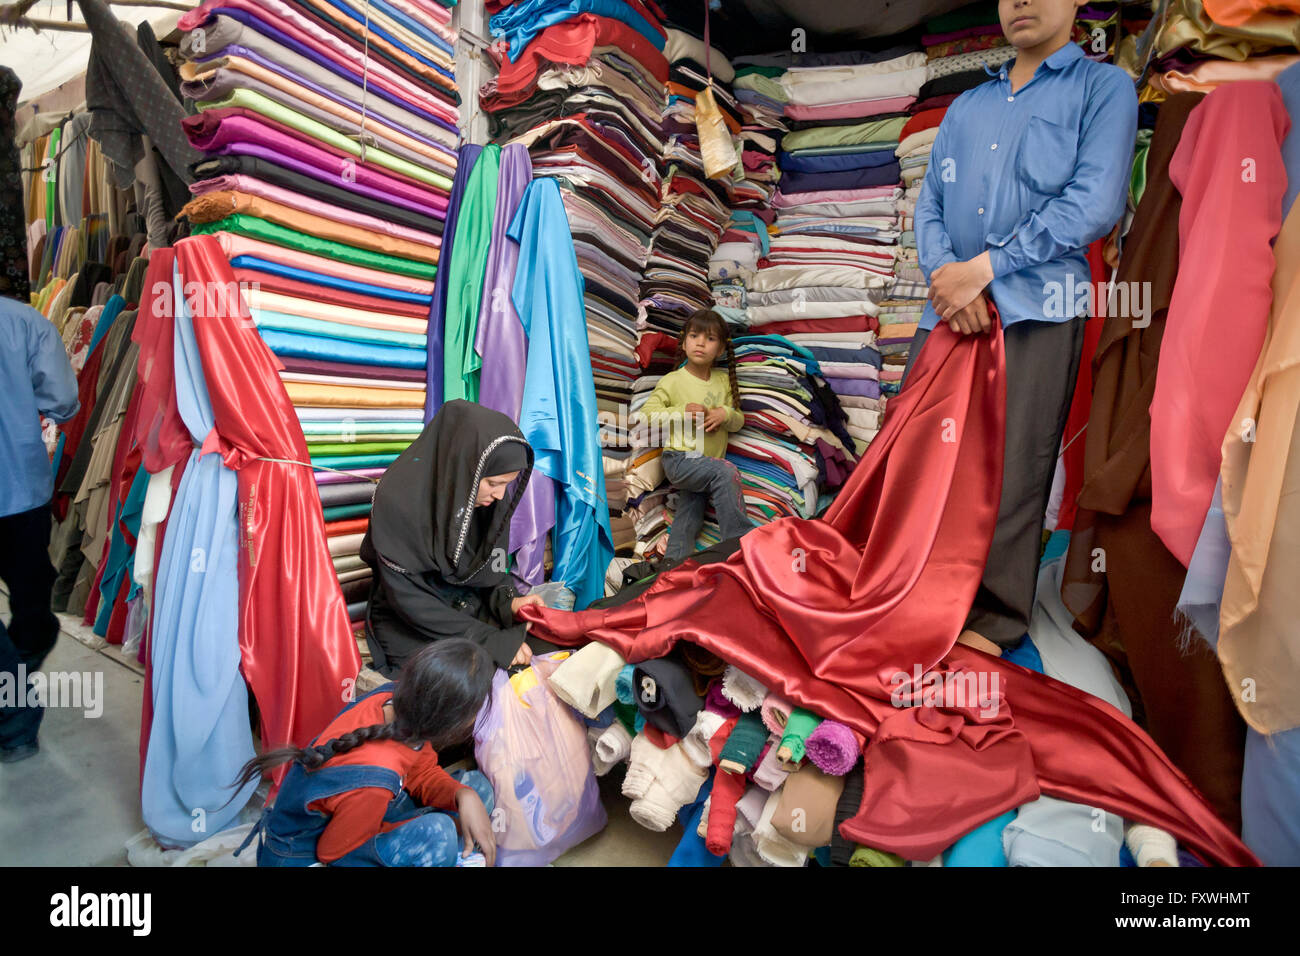 Shopping for fabrics to make wedding dress in Mandawi Bazaar, Kabul, Afghanistan - Stock Image